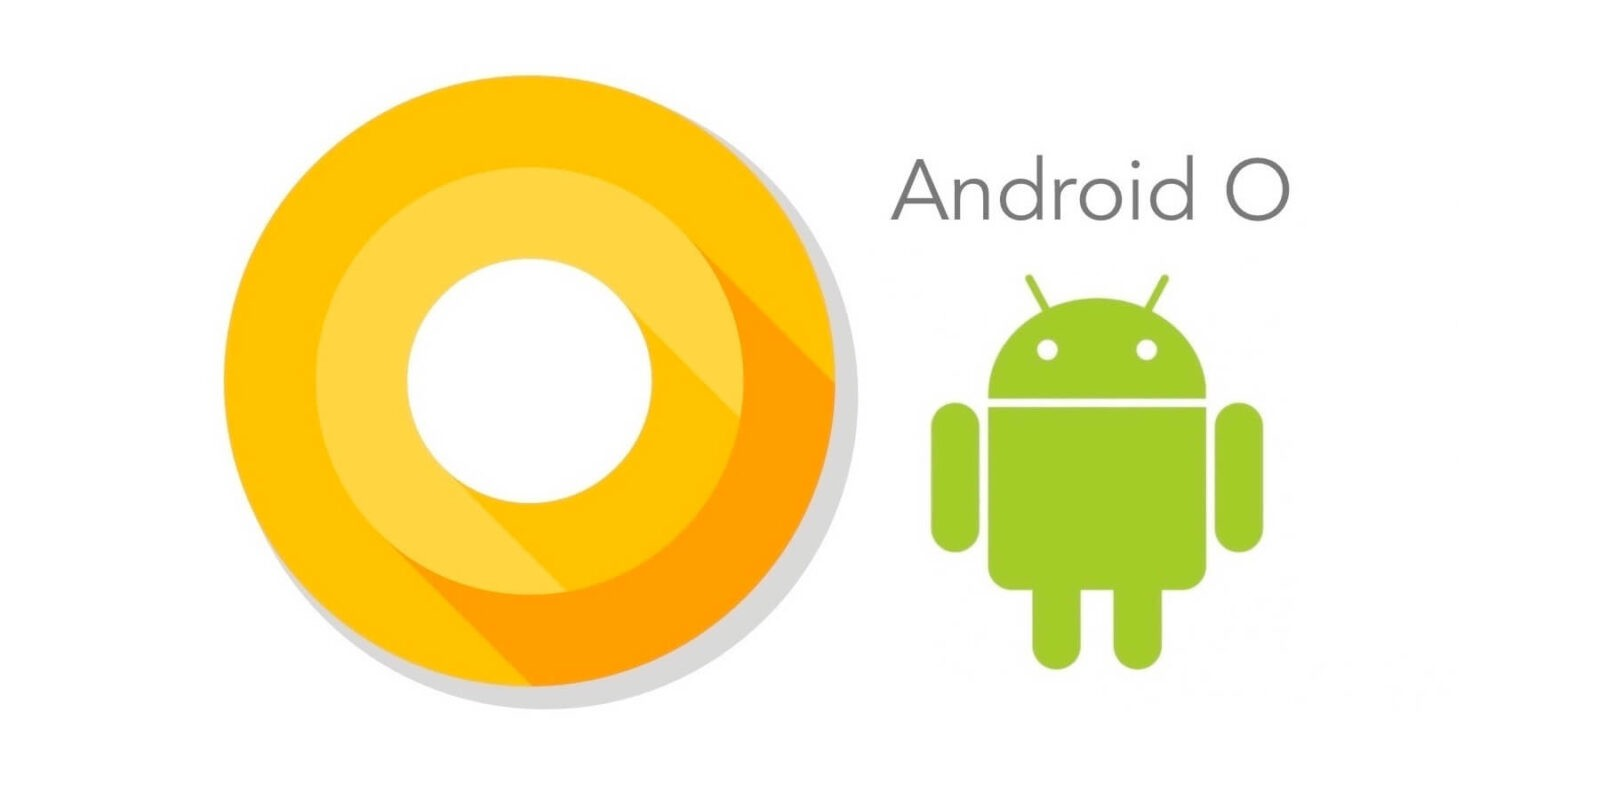 Android O - the new release of the popular mobile OS 4